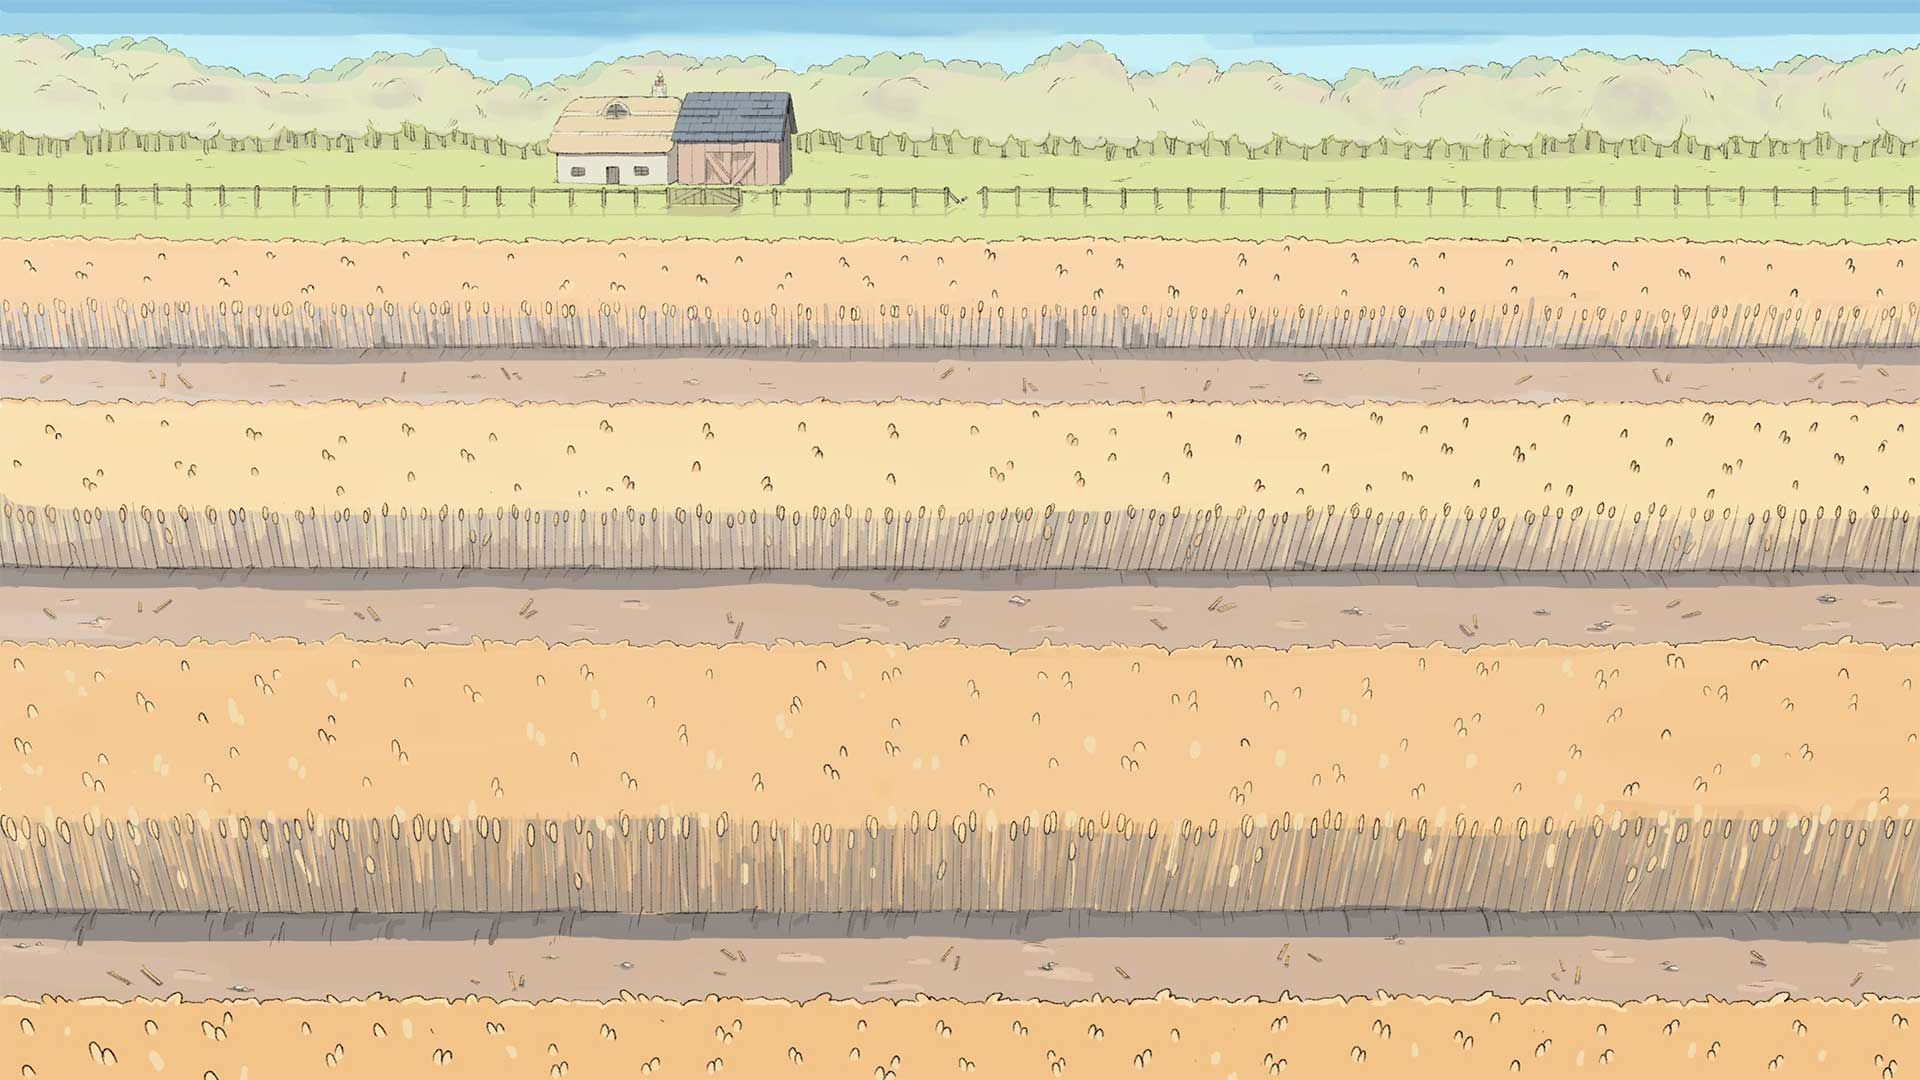 illustration of rows of wheat in a field